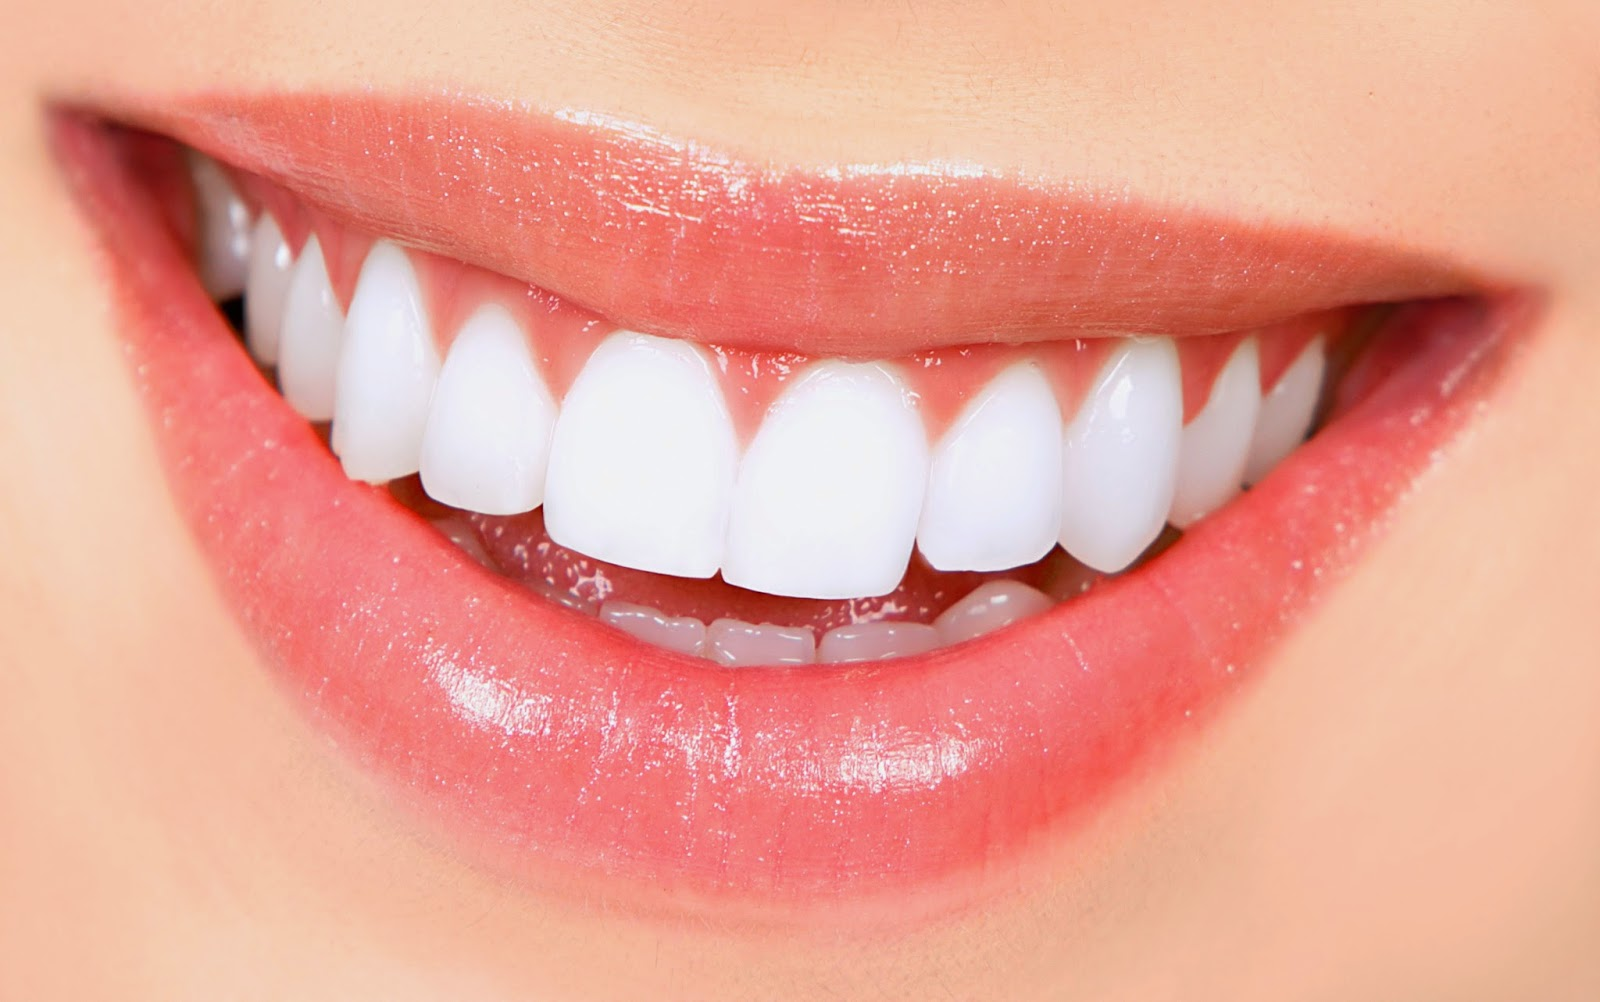 Fighting Cavities And Gum Disease With Graphene